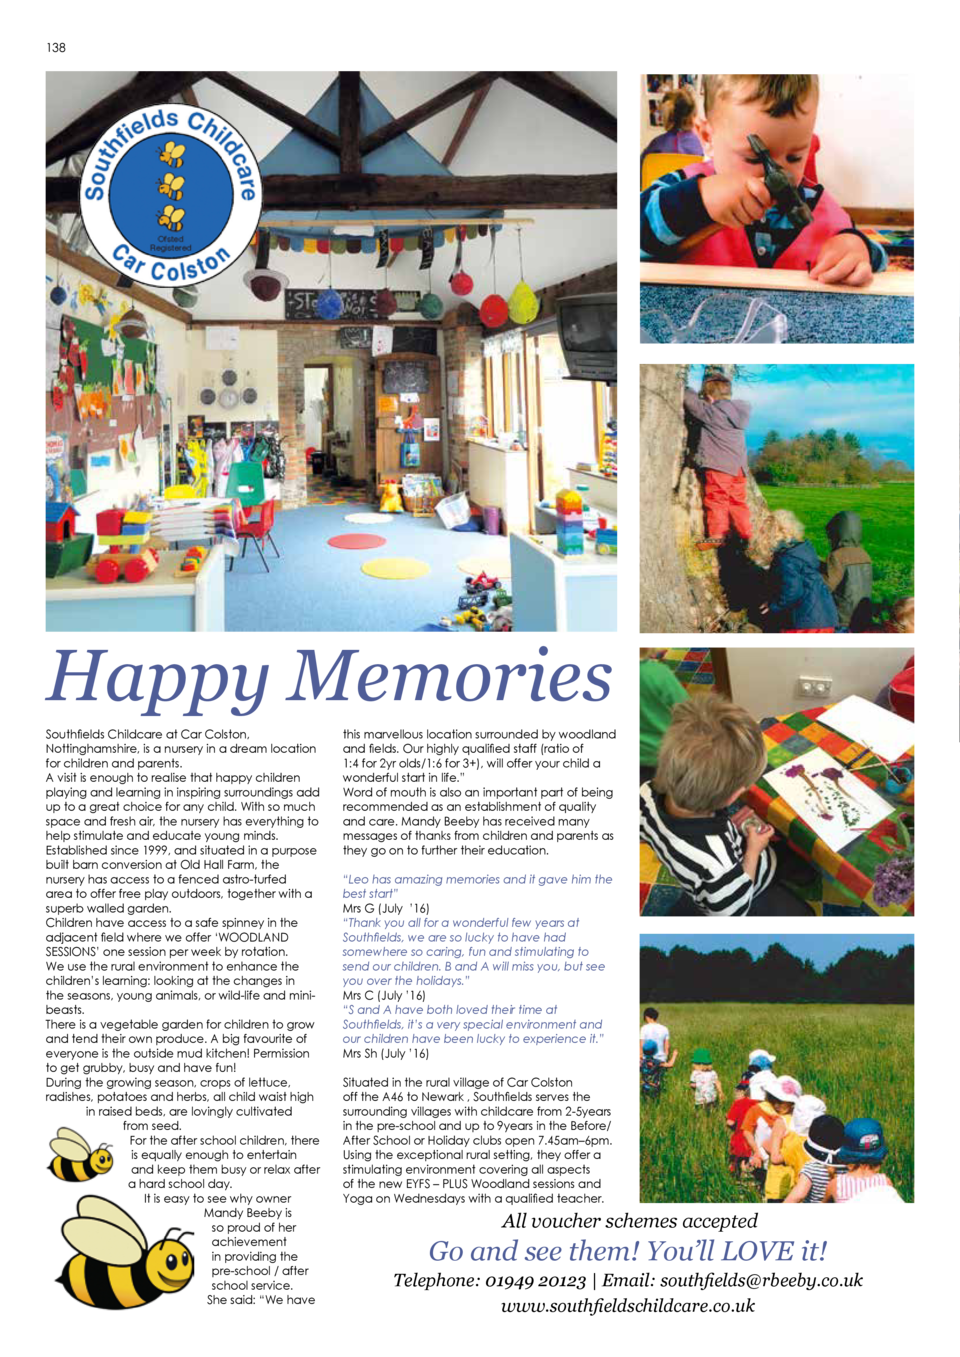 138  139  CHATSWORTH   Past, Present and Future  Happy Memories Southfields Childcare at Car Colston, Nottinghamshire, is ...